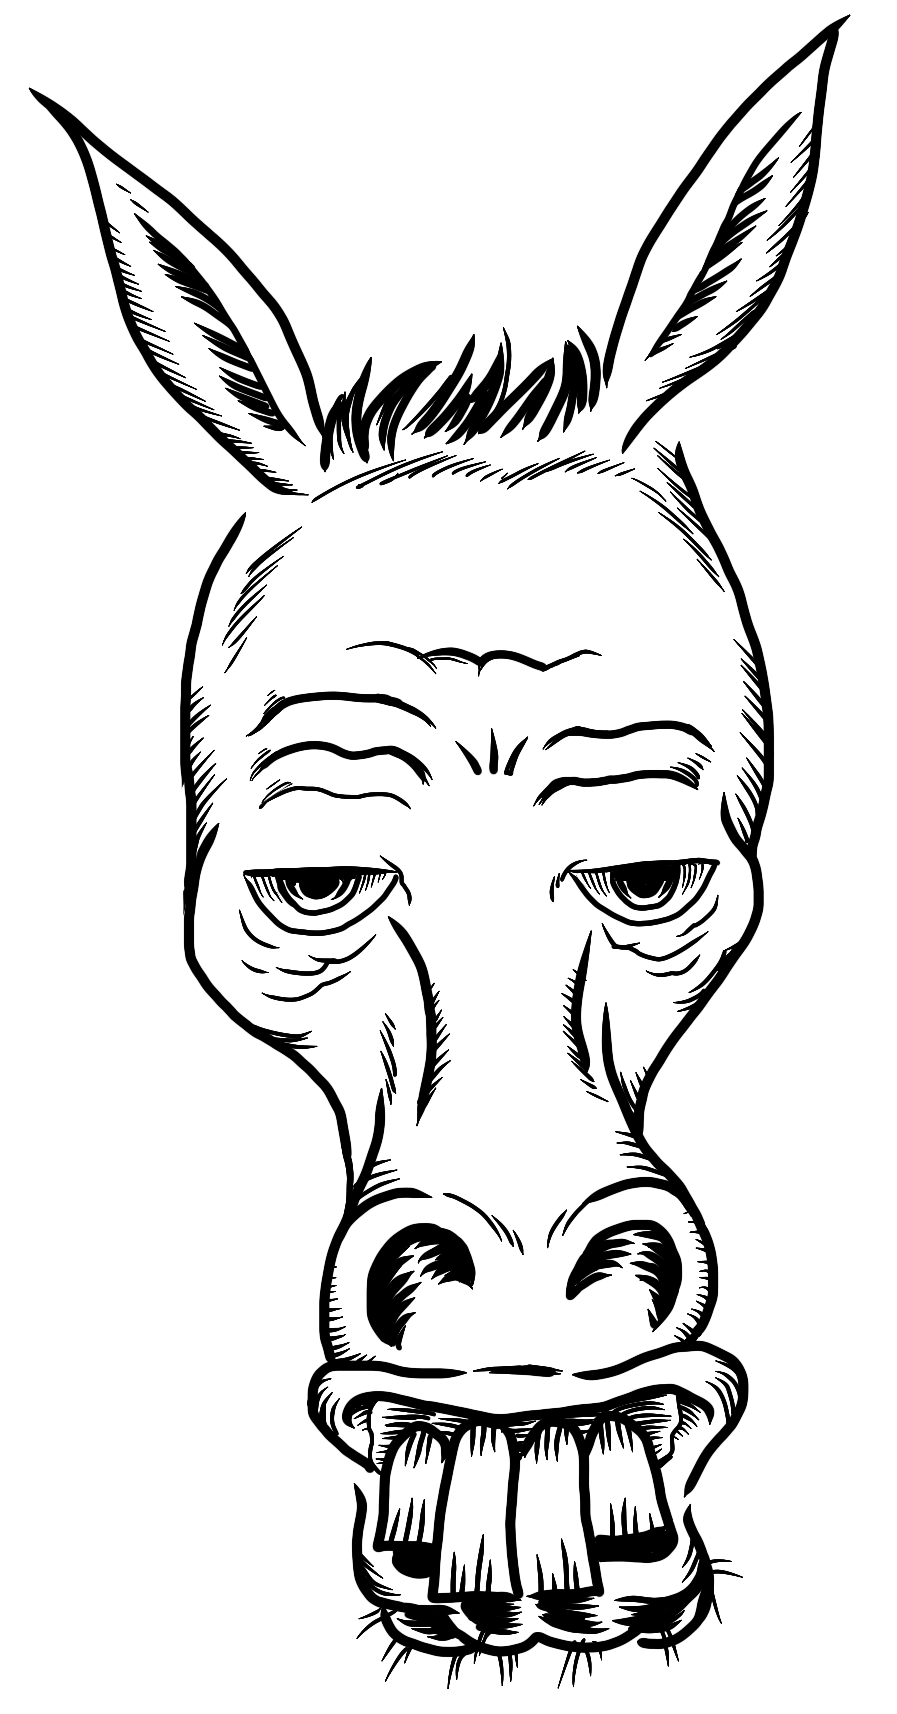 Donkey-Front-02.png